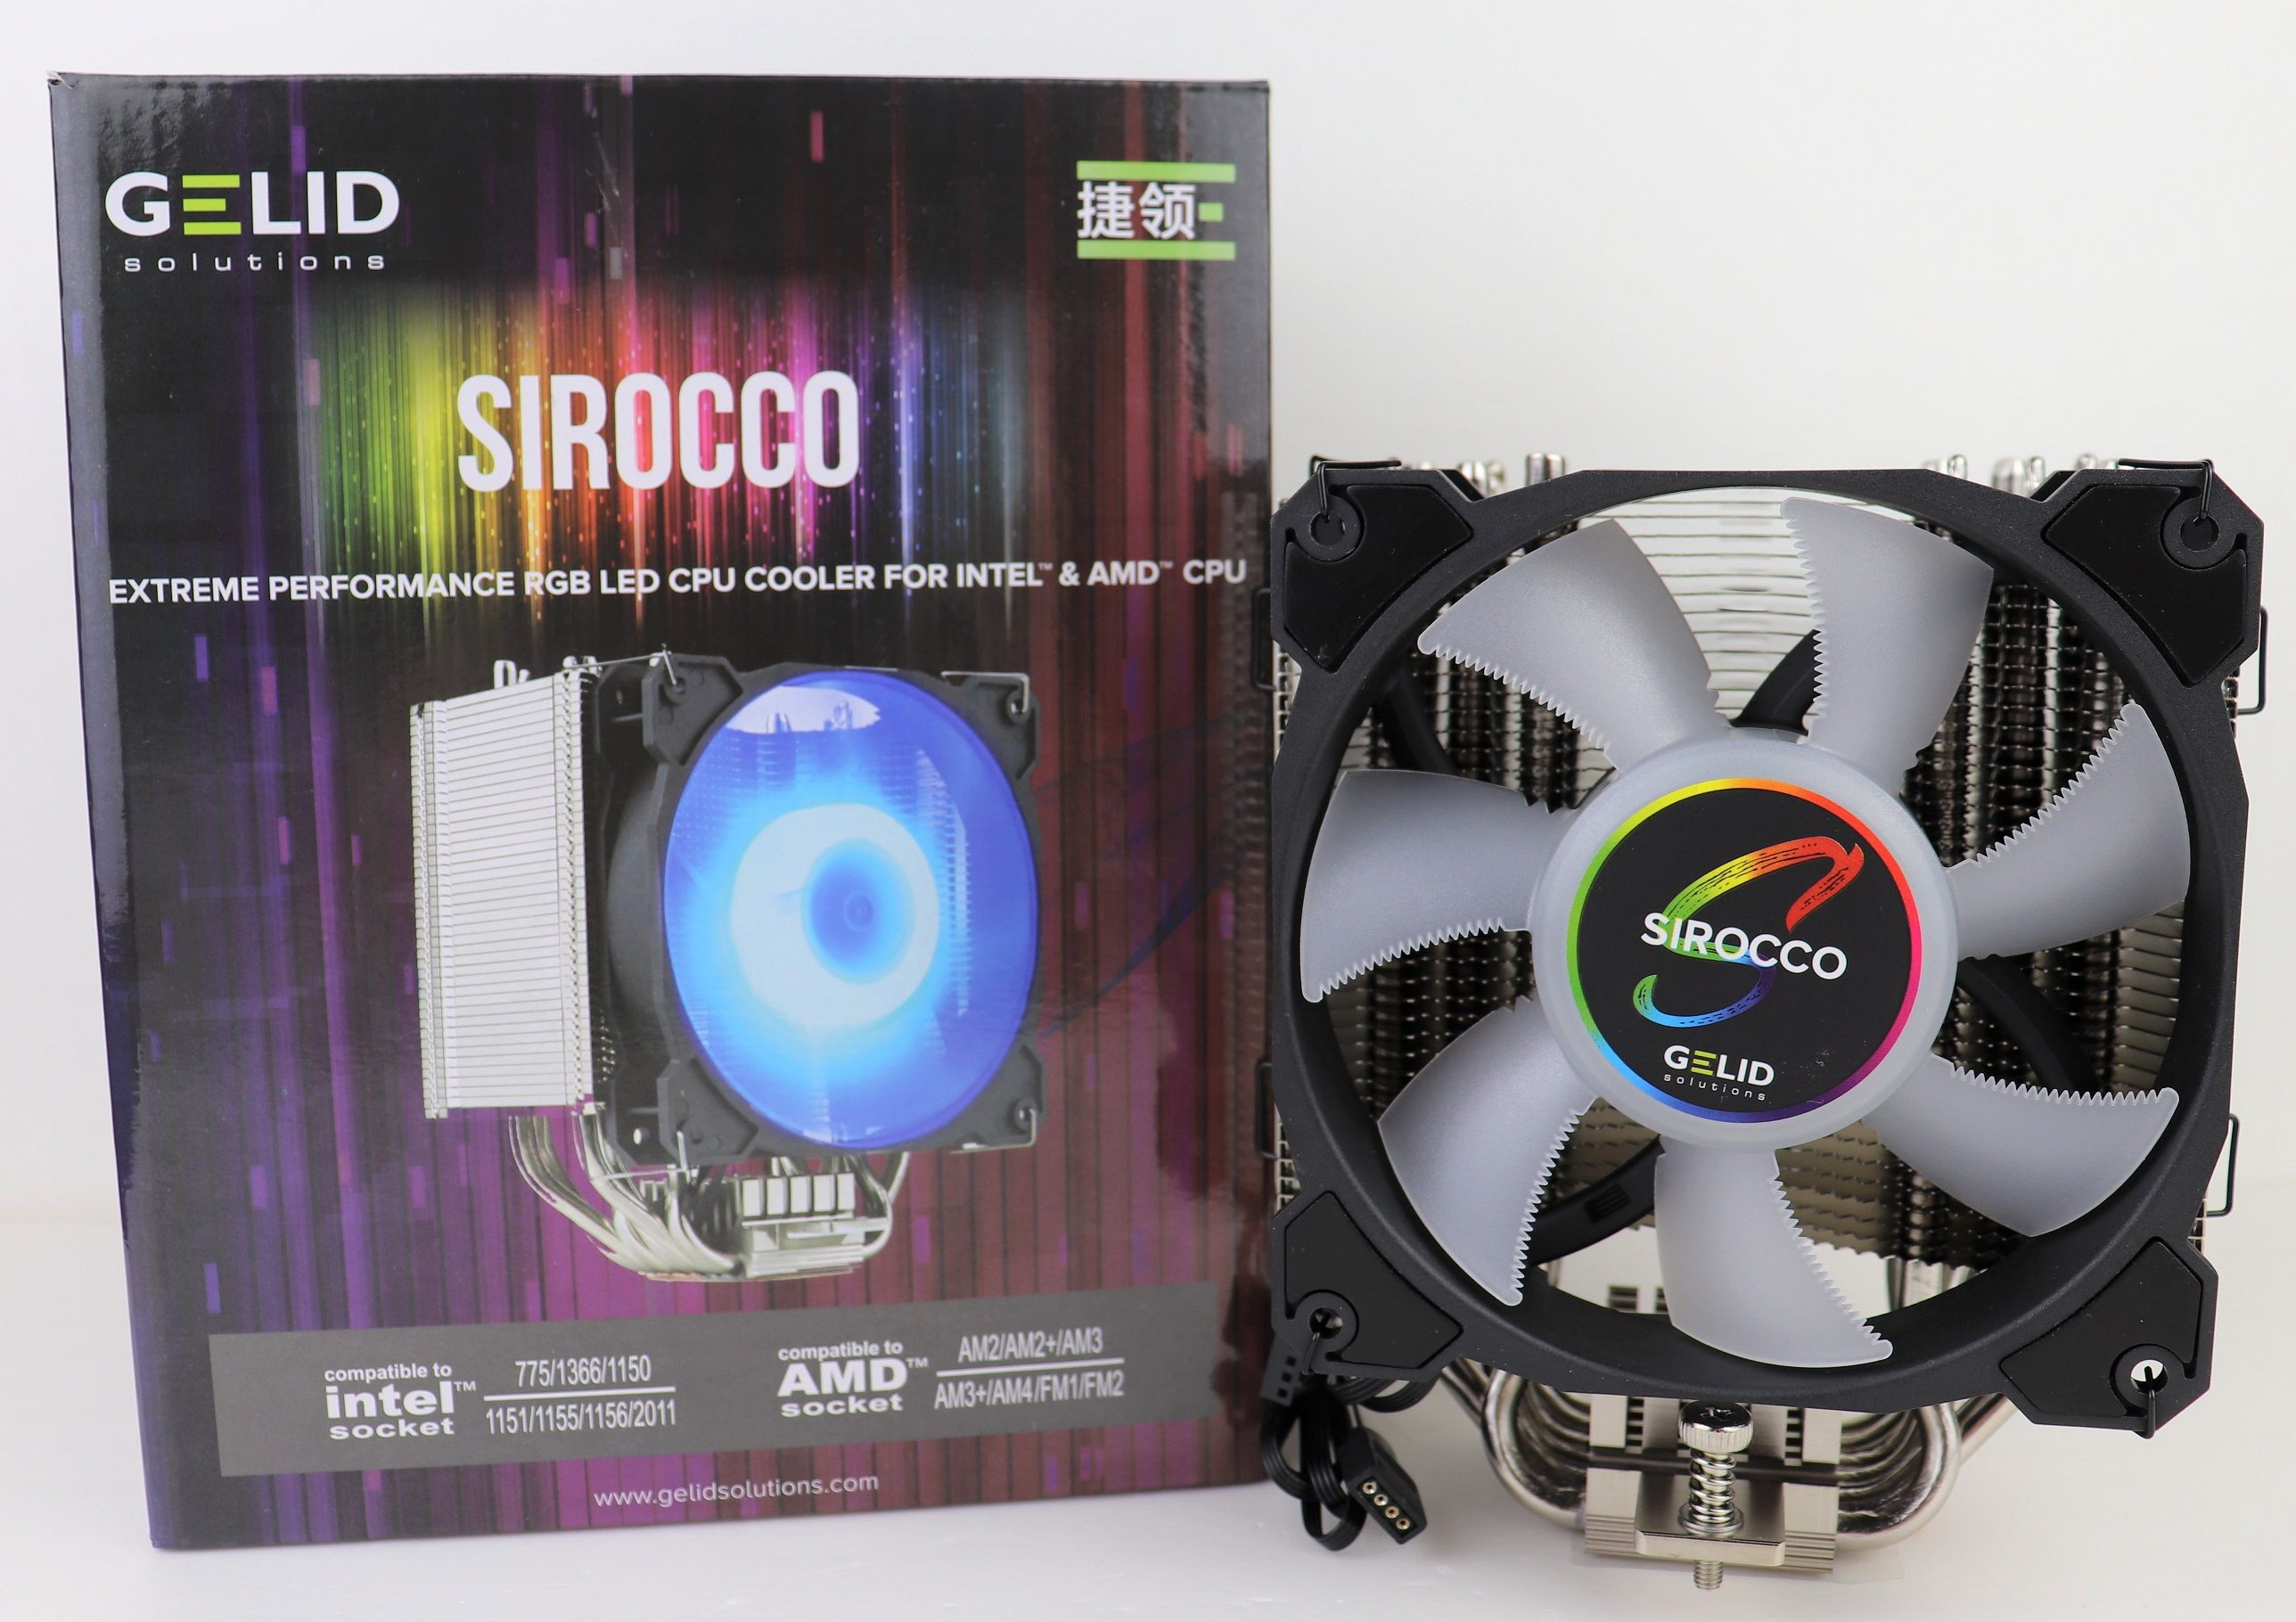 The Review Of Gelid Sirocco Cpu Cooler Is Up On Our Website Now Gelid Sirocco Radiant Rgb Cpu Cooler Pc Gaming Gamer Coolin Unboxing Cooler Rgb Led